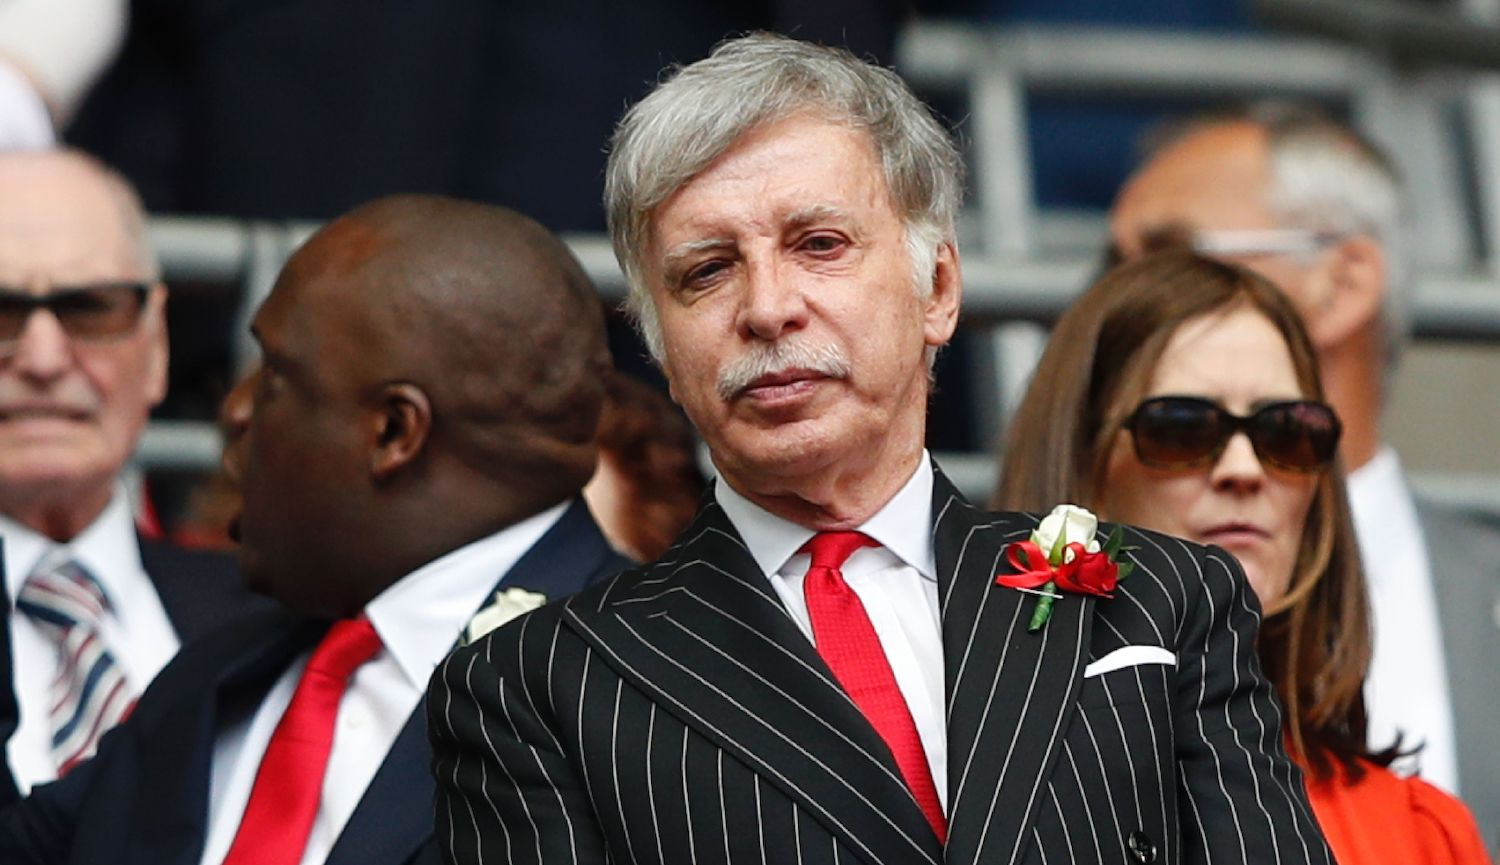 Arsenal's US owner Stan Kroenke waits for kick off in the English FA Cup final football match between Arsenal and Chelsea at Wembley stadium in London on May 27, 2017. / AFP PHOTO / Adrian DENNIS / NOT FOR MARKETING OR ADVERTISING USE / RESTRICTED TO EDITORIAL USE (Photo credit should read ADRIAN DENNIS/AFP via Getty Images)